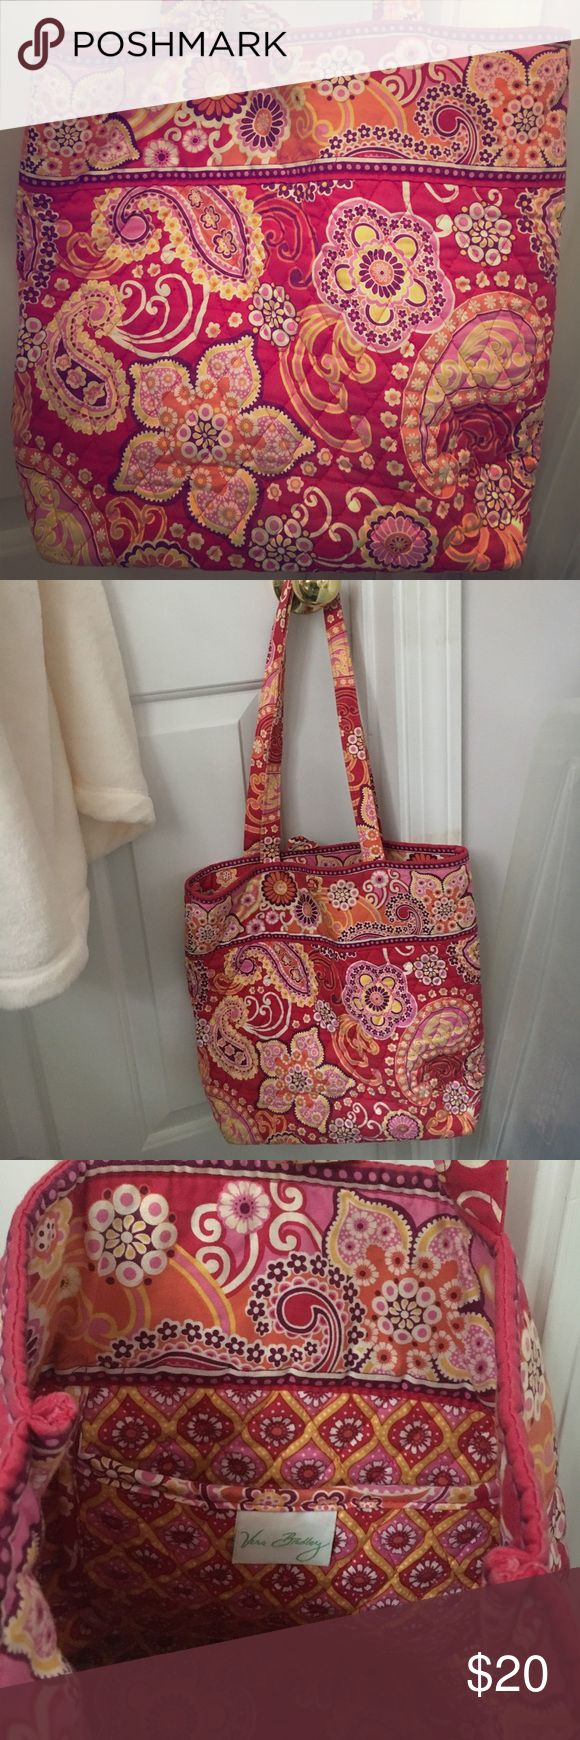 Vera Bradley tote bag New condition Vera Bradley tote bag. Button closure on top, inside pocket. Great size for everyday use Vera Bradley Bags Totes